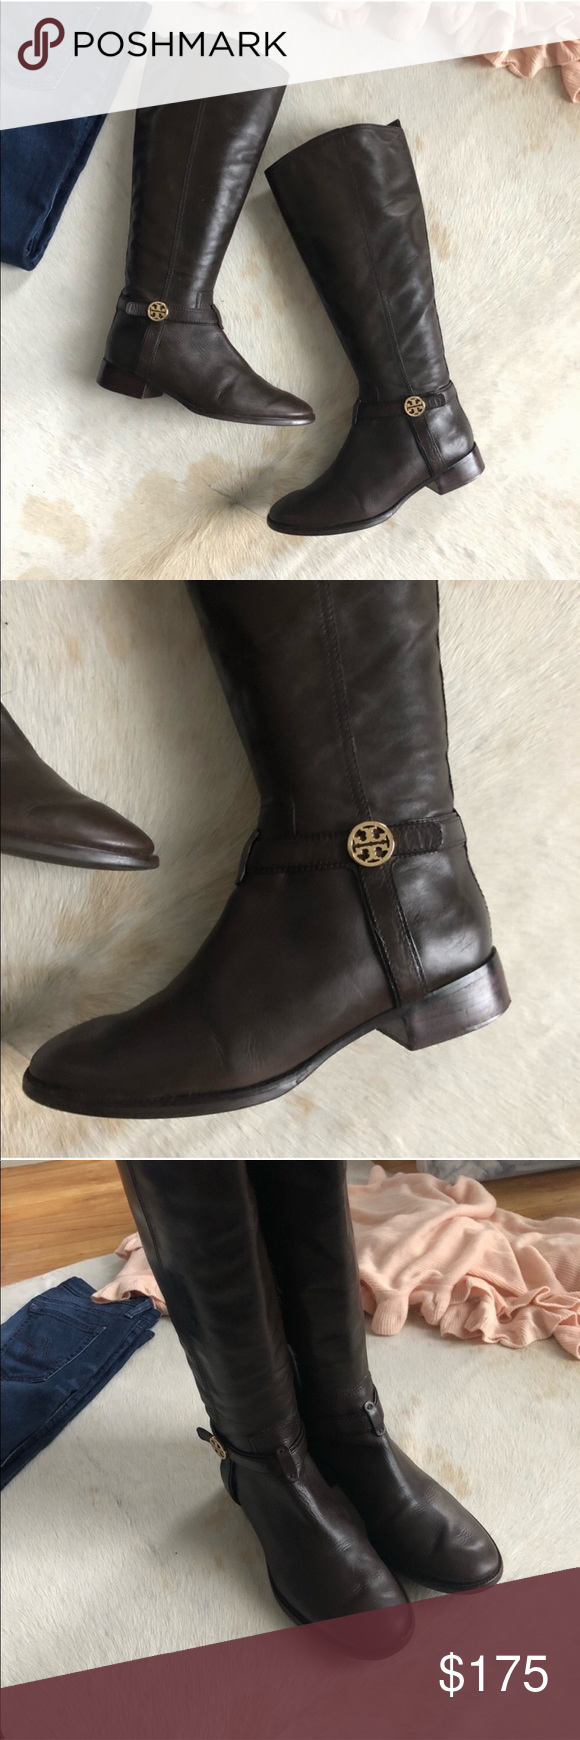 02a7ccbc594f Tory Burch Brown Bristol Riding Boot with Logo Great riding boots by Tory  Burch. Few signs of wear as shown in pics but overall great condition!